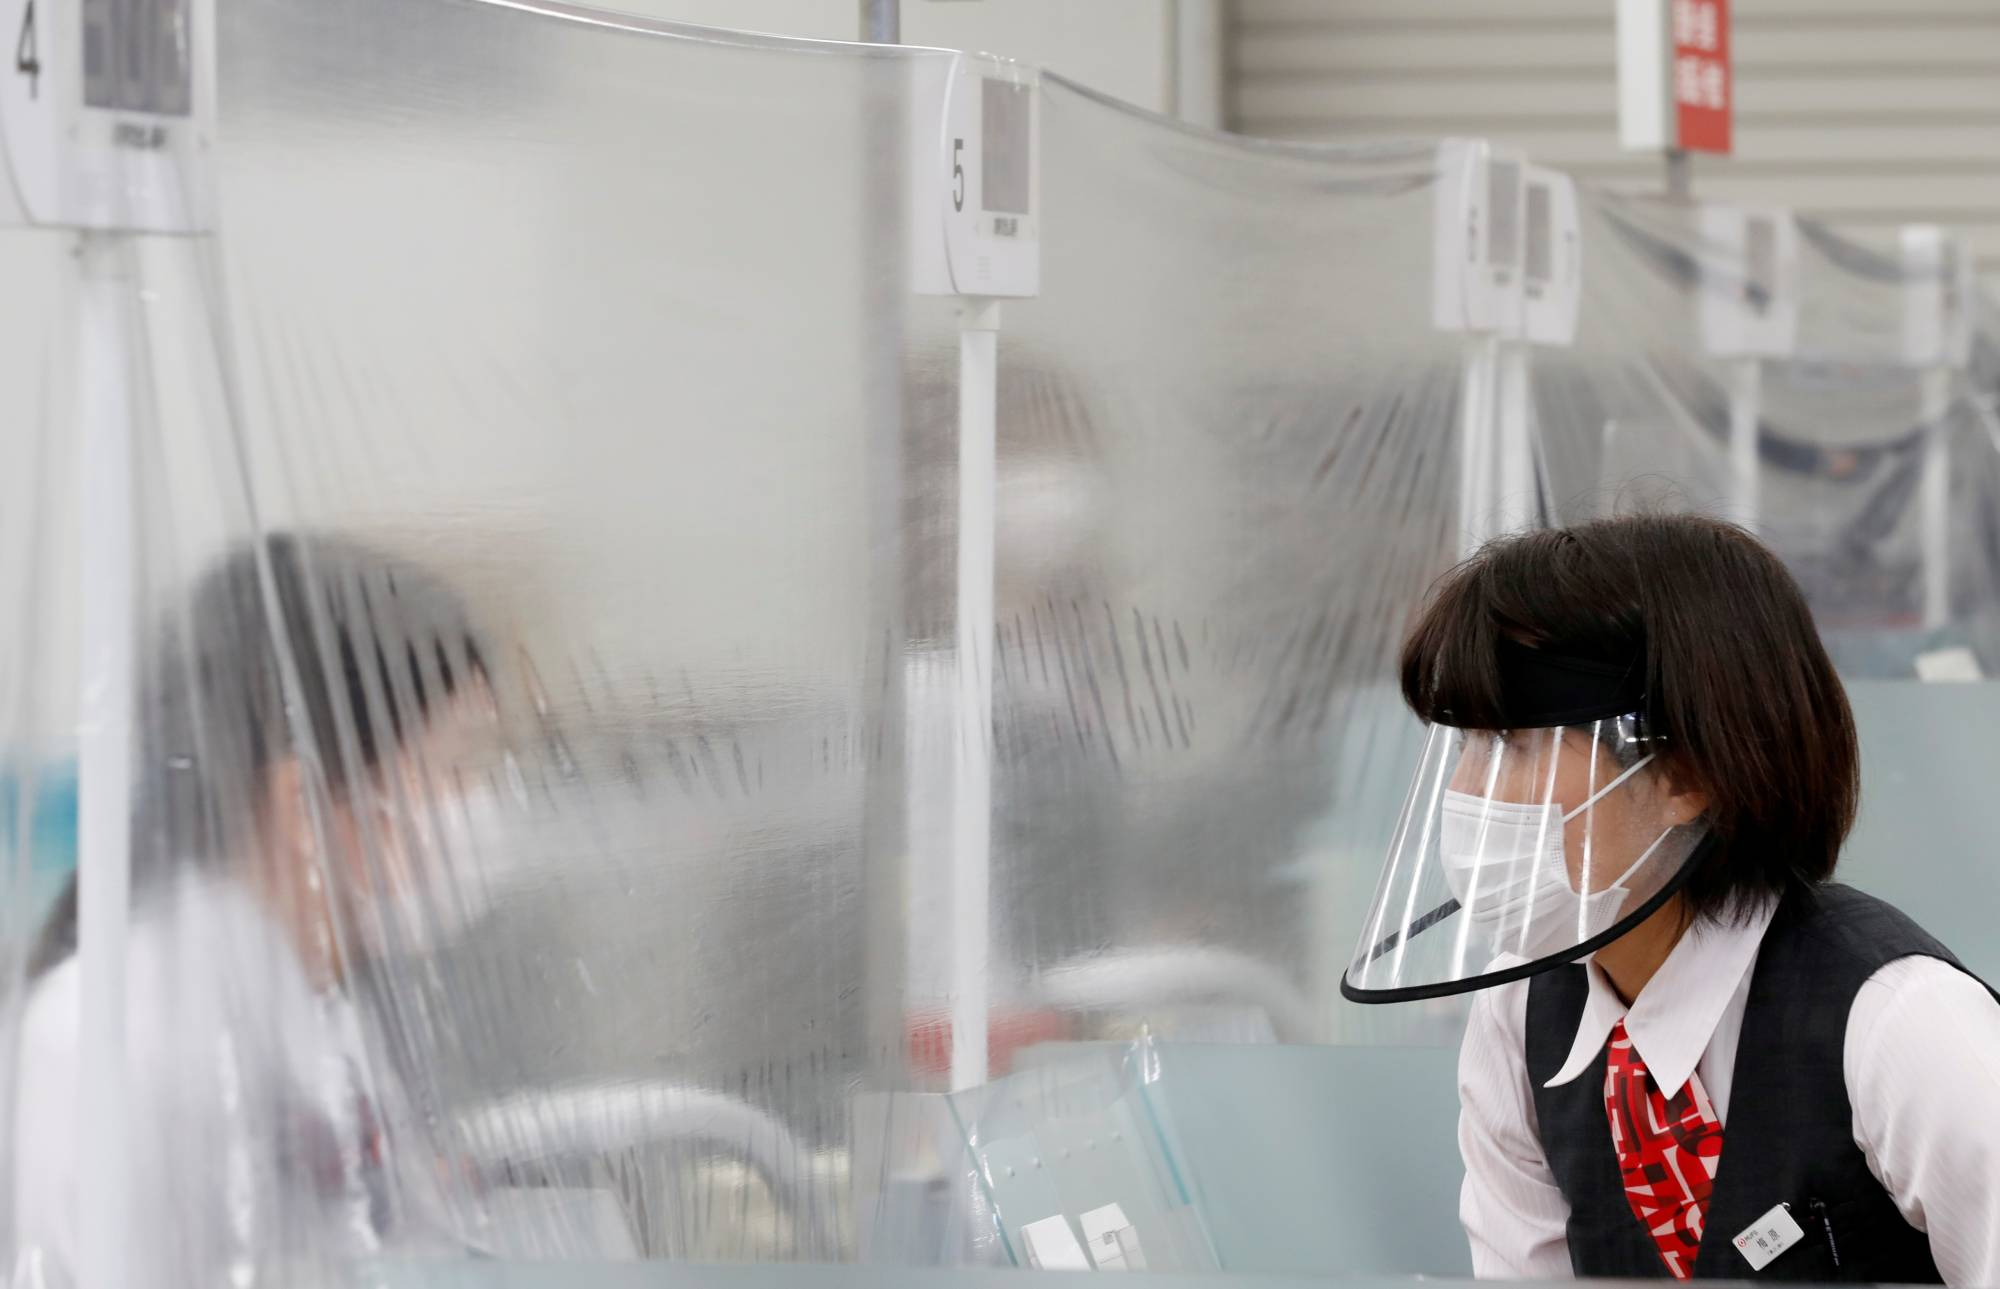 A staff member wearing a face shield talks to a bank teller at a counter where a plastic curtain is installed in order to prevent infections following the COVID-19 outbreak, at the Higashinakano branch of MUFG Bank in Tokyo on Friday. | REUTERS